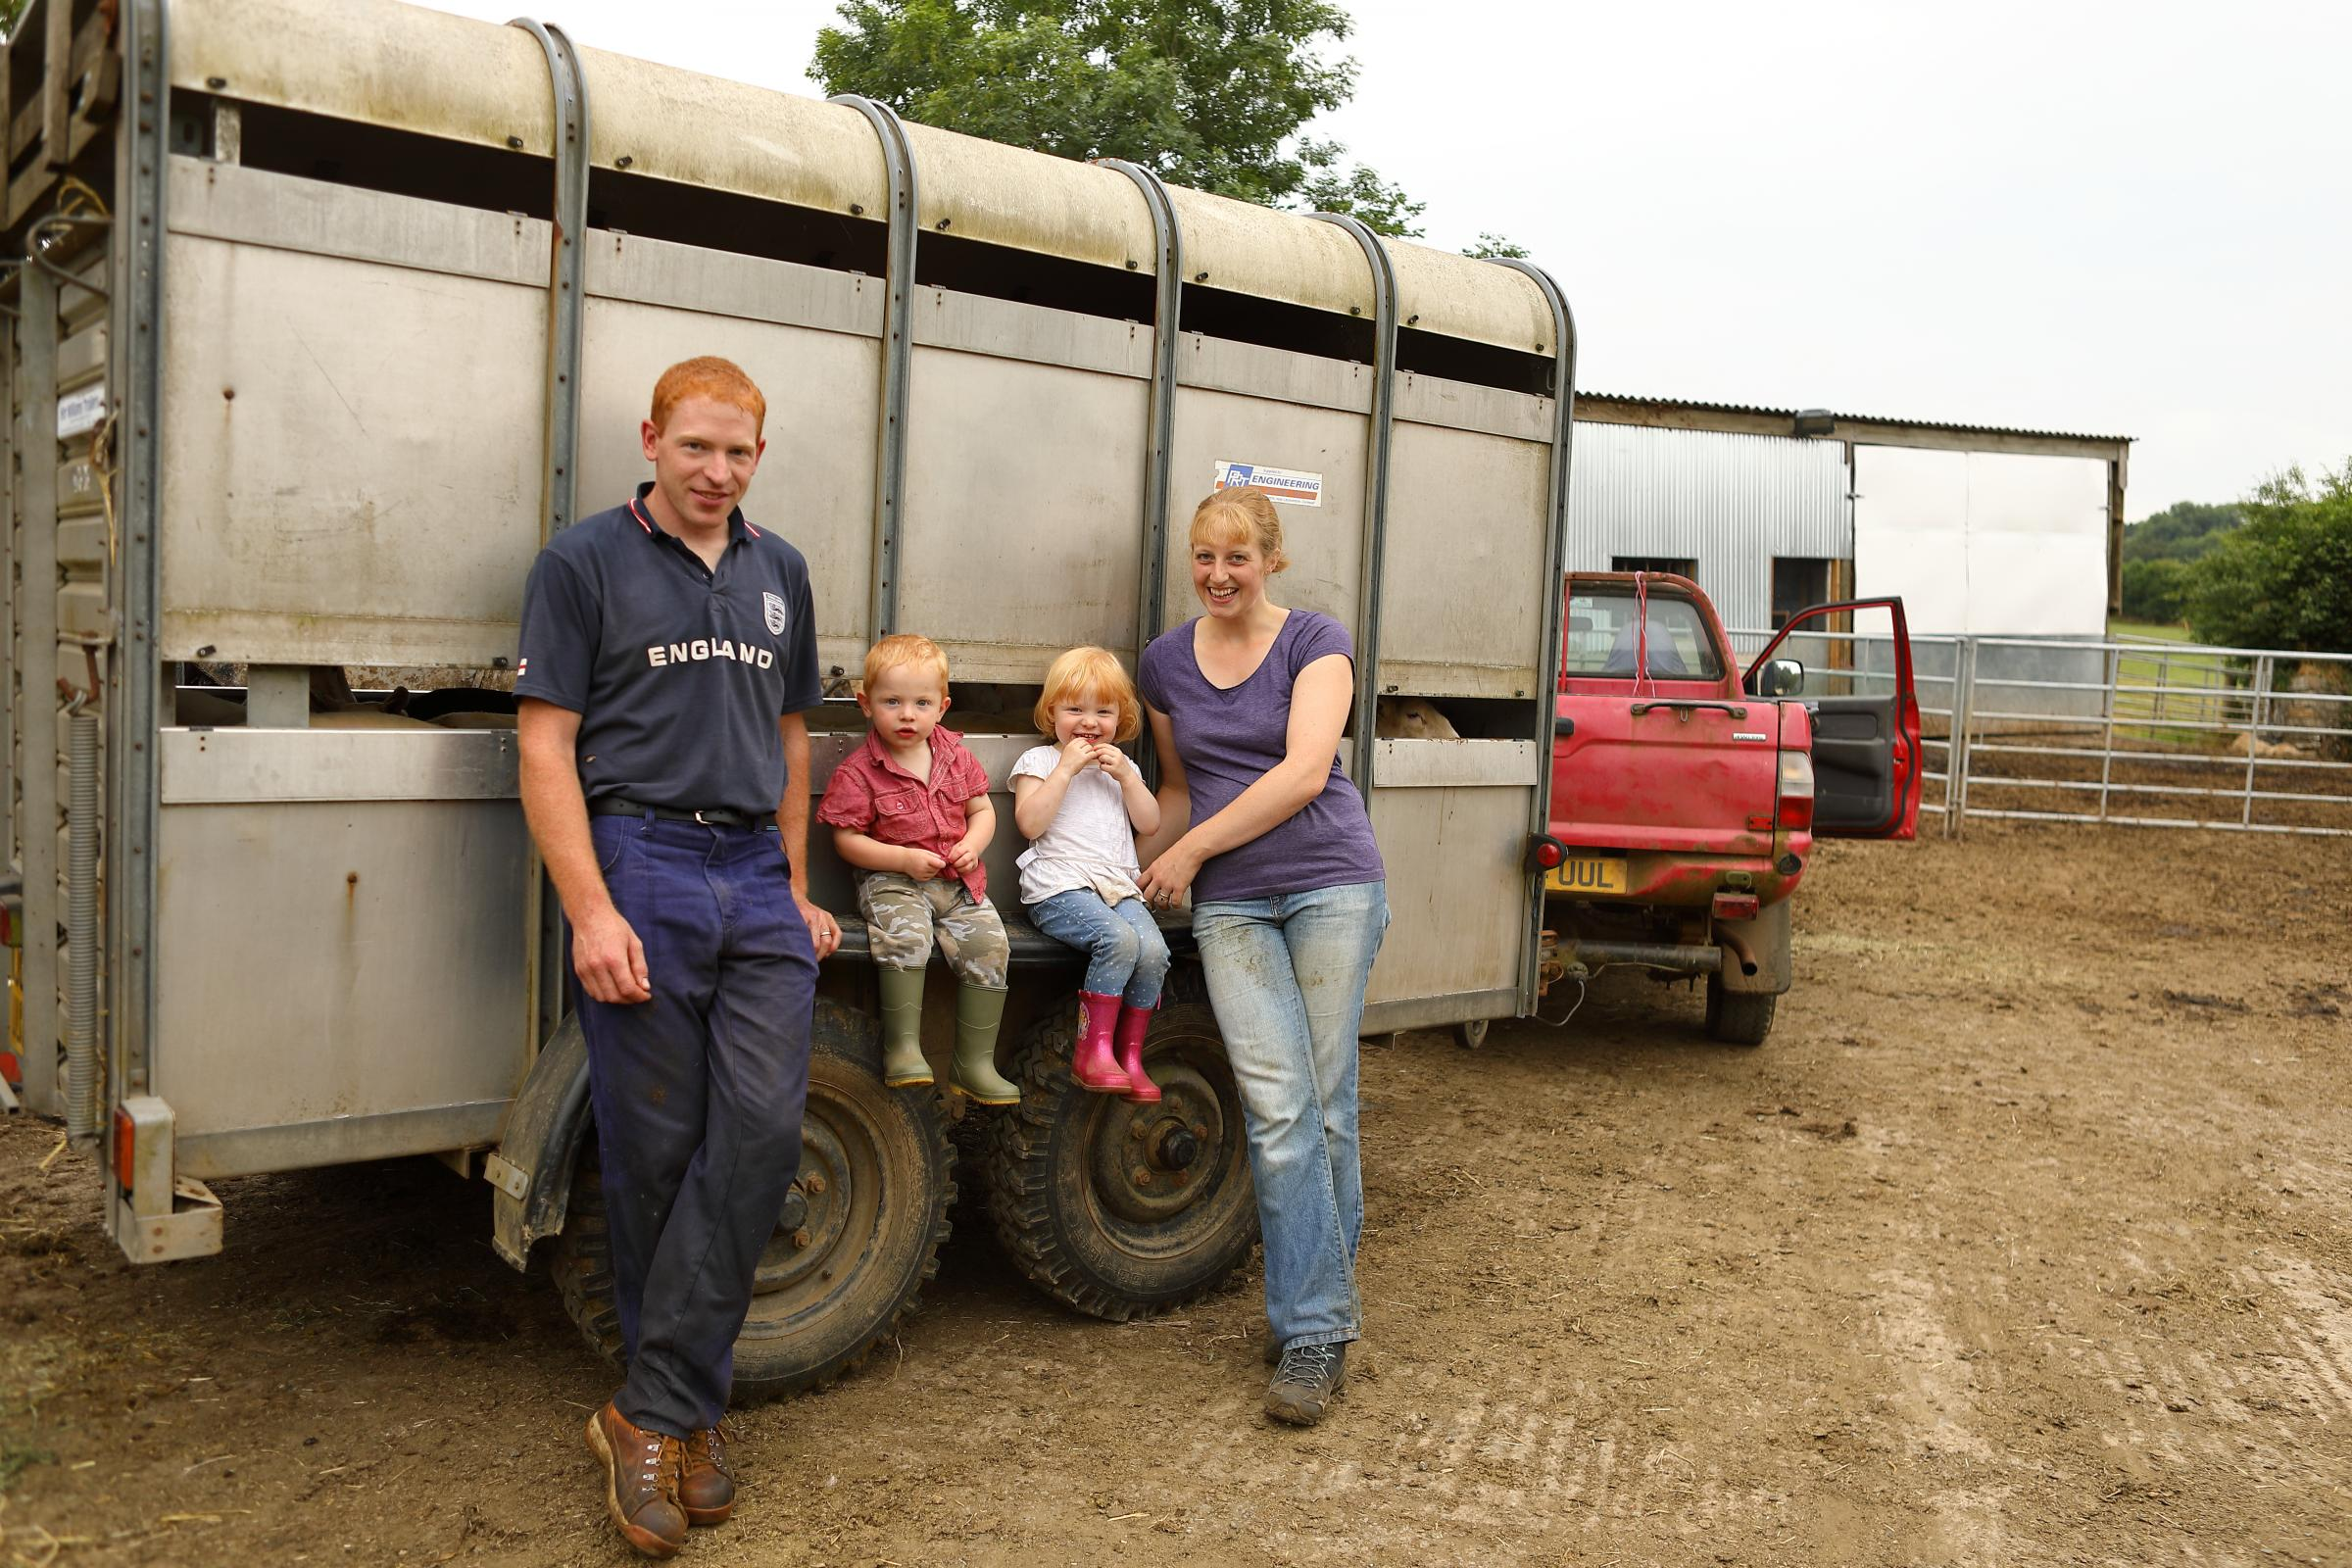 Mark & Isobelle Delbridge from Plushayes Farm in Liskeard will be featured in tonight's episode of Devon and Cornwall. Image: True North